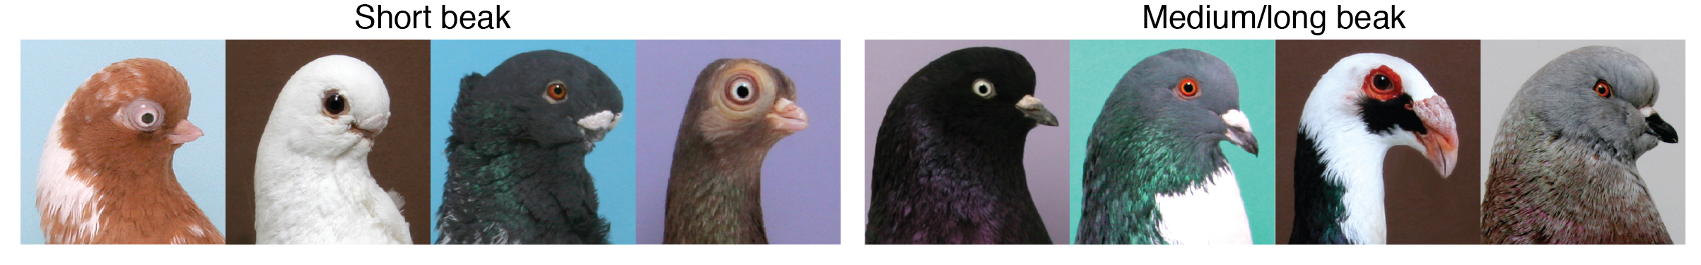 Headshots of domestic pigeon breeds. The left four have short beaks, the right four have medium or long beaks.